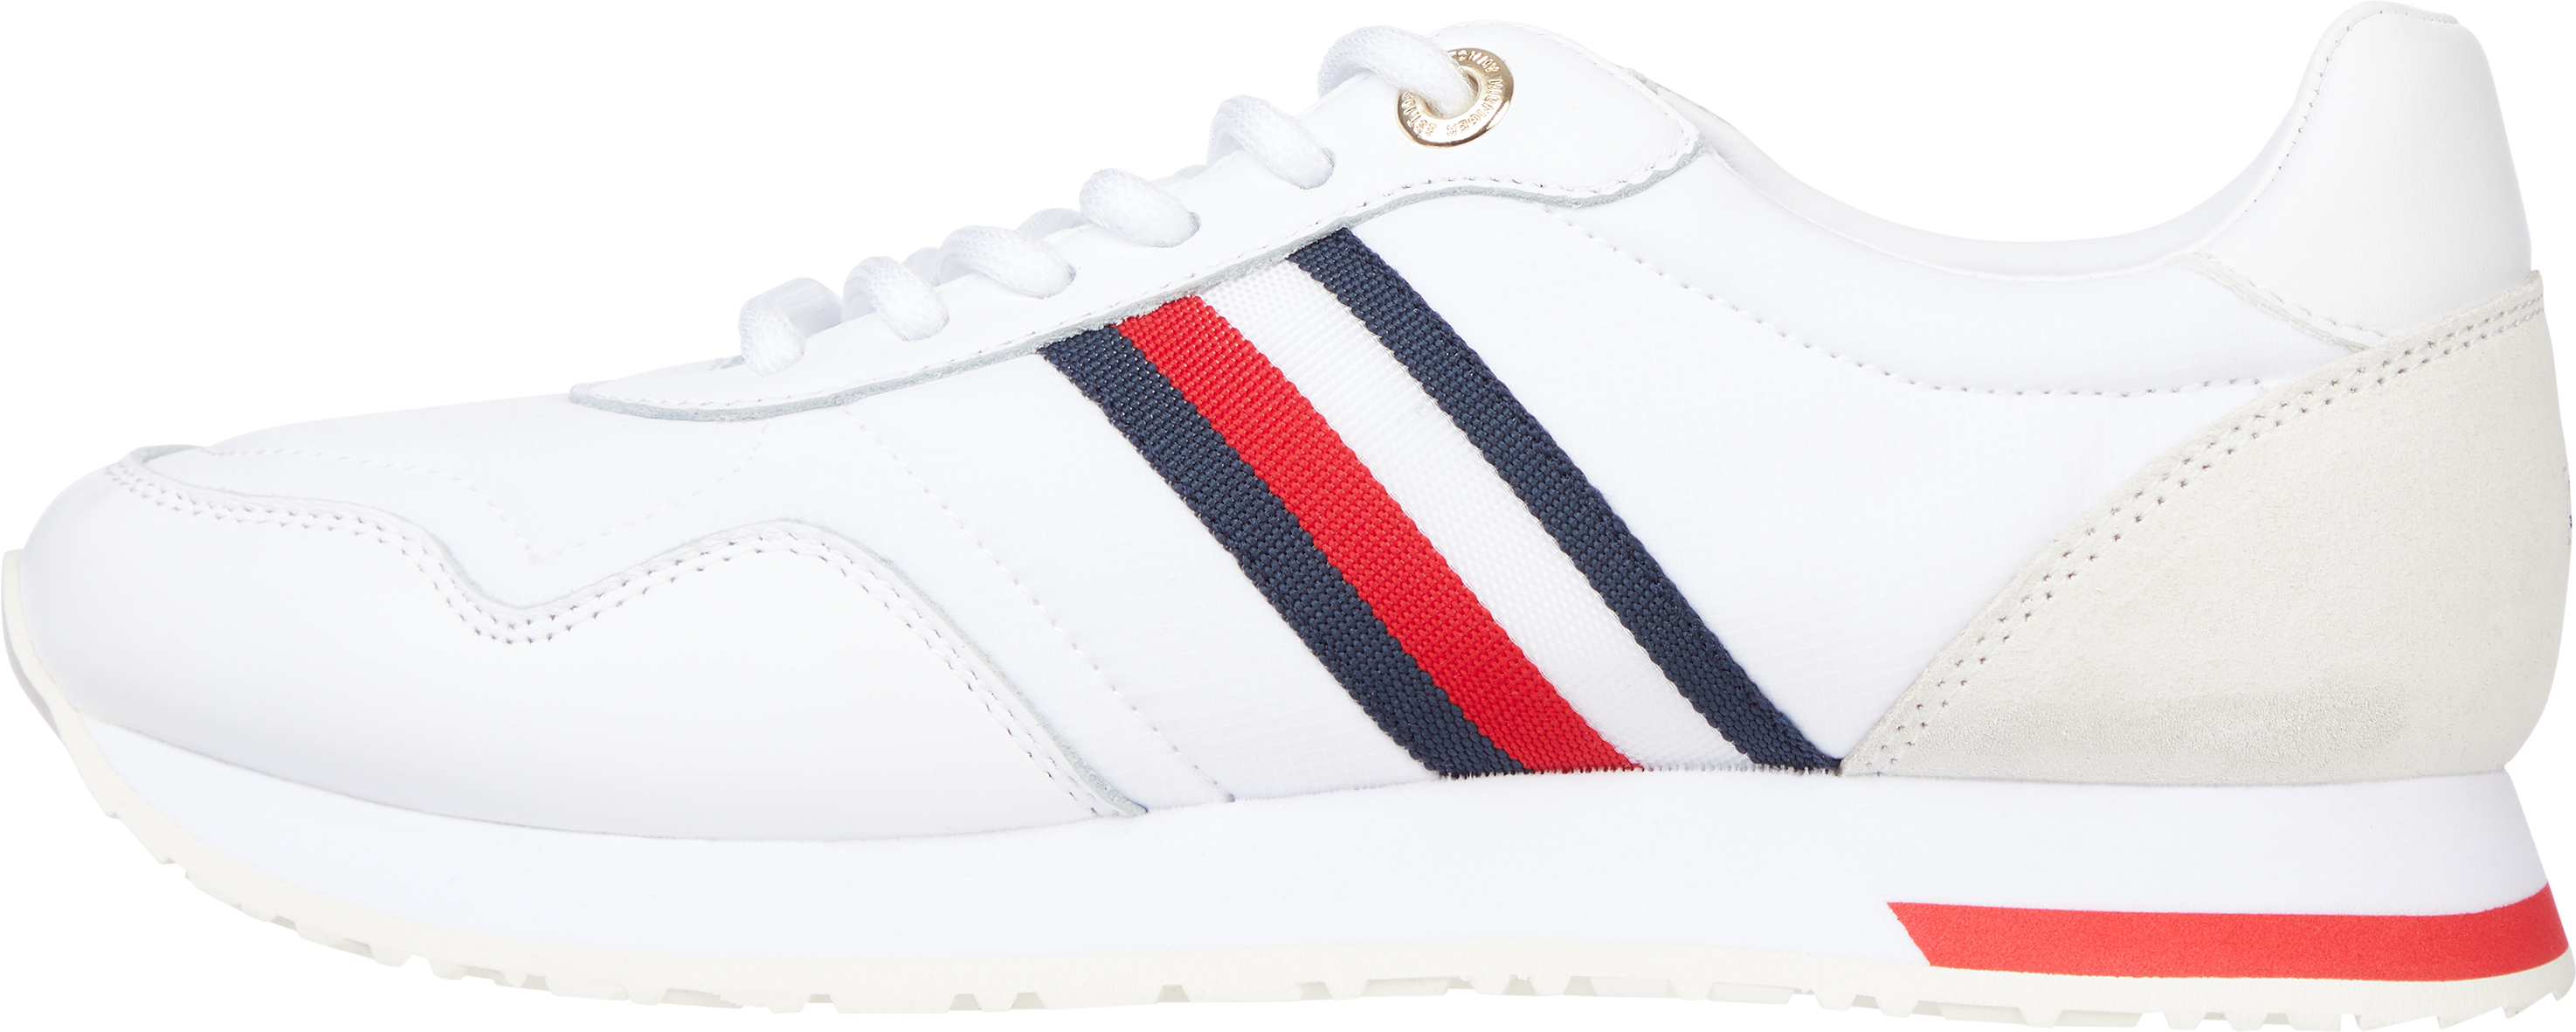 Tommy Hilfiger Sneaker Casual City Runner